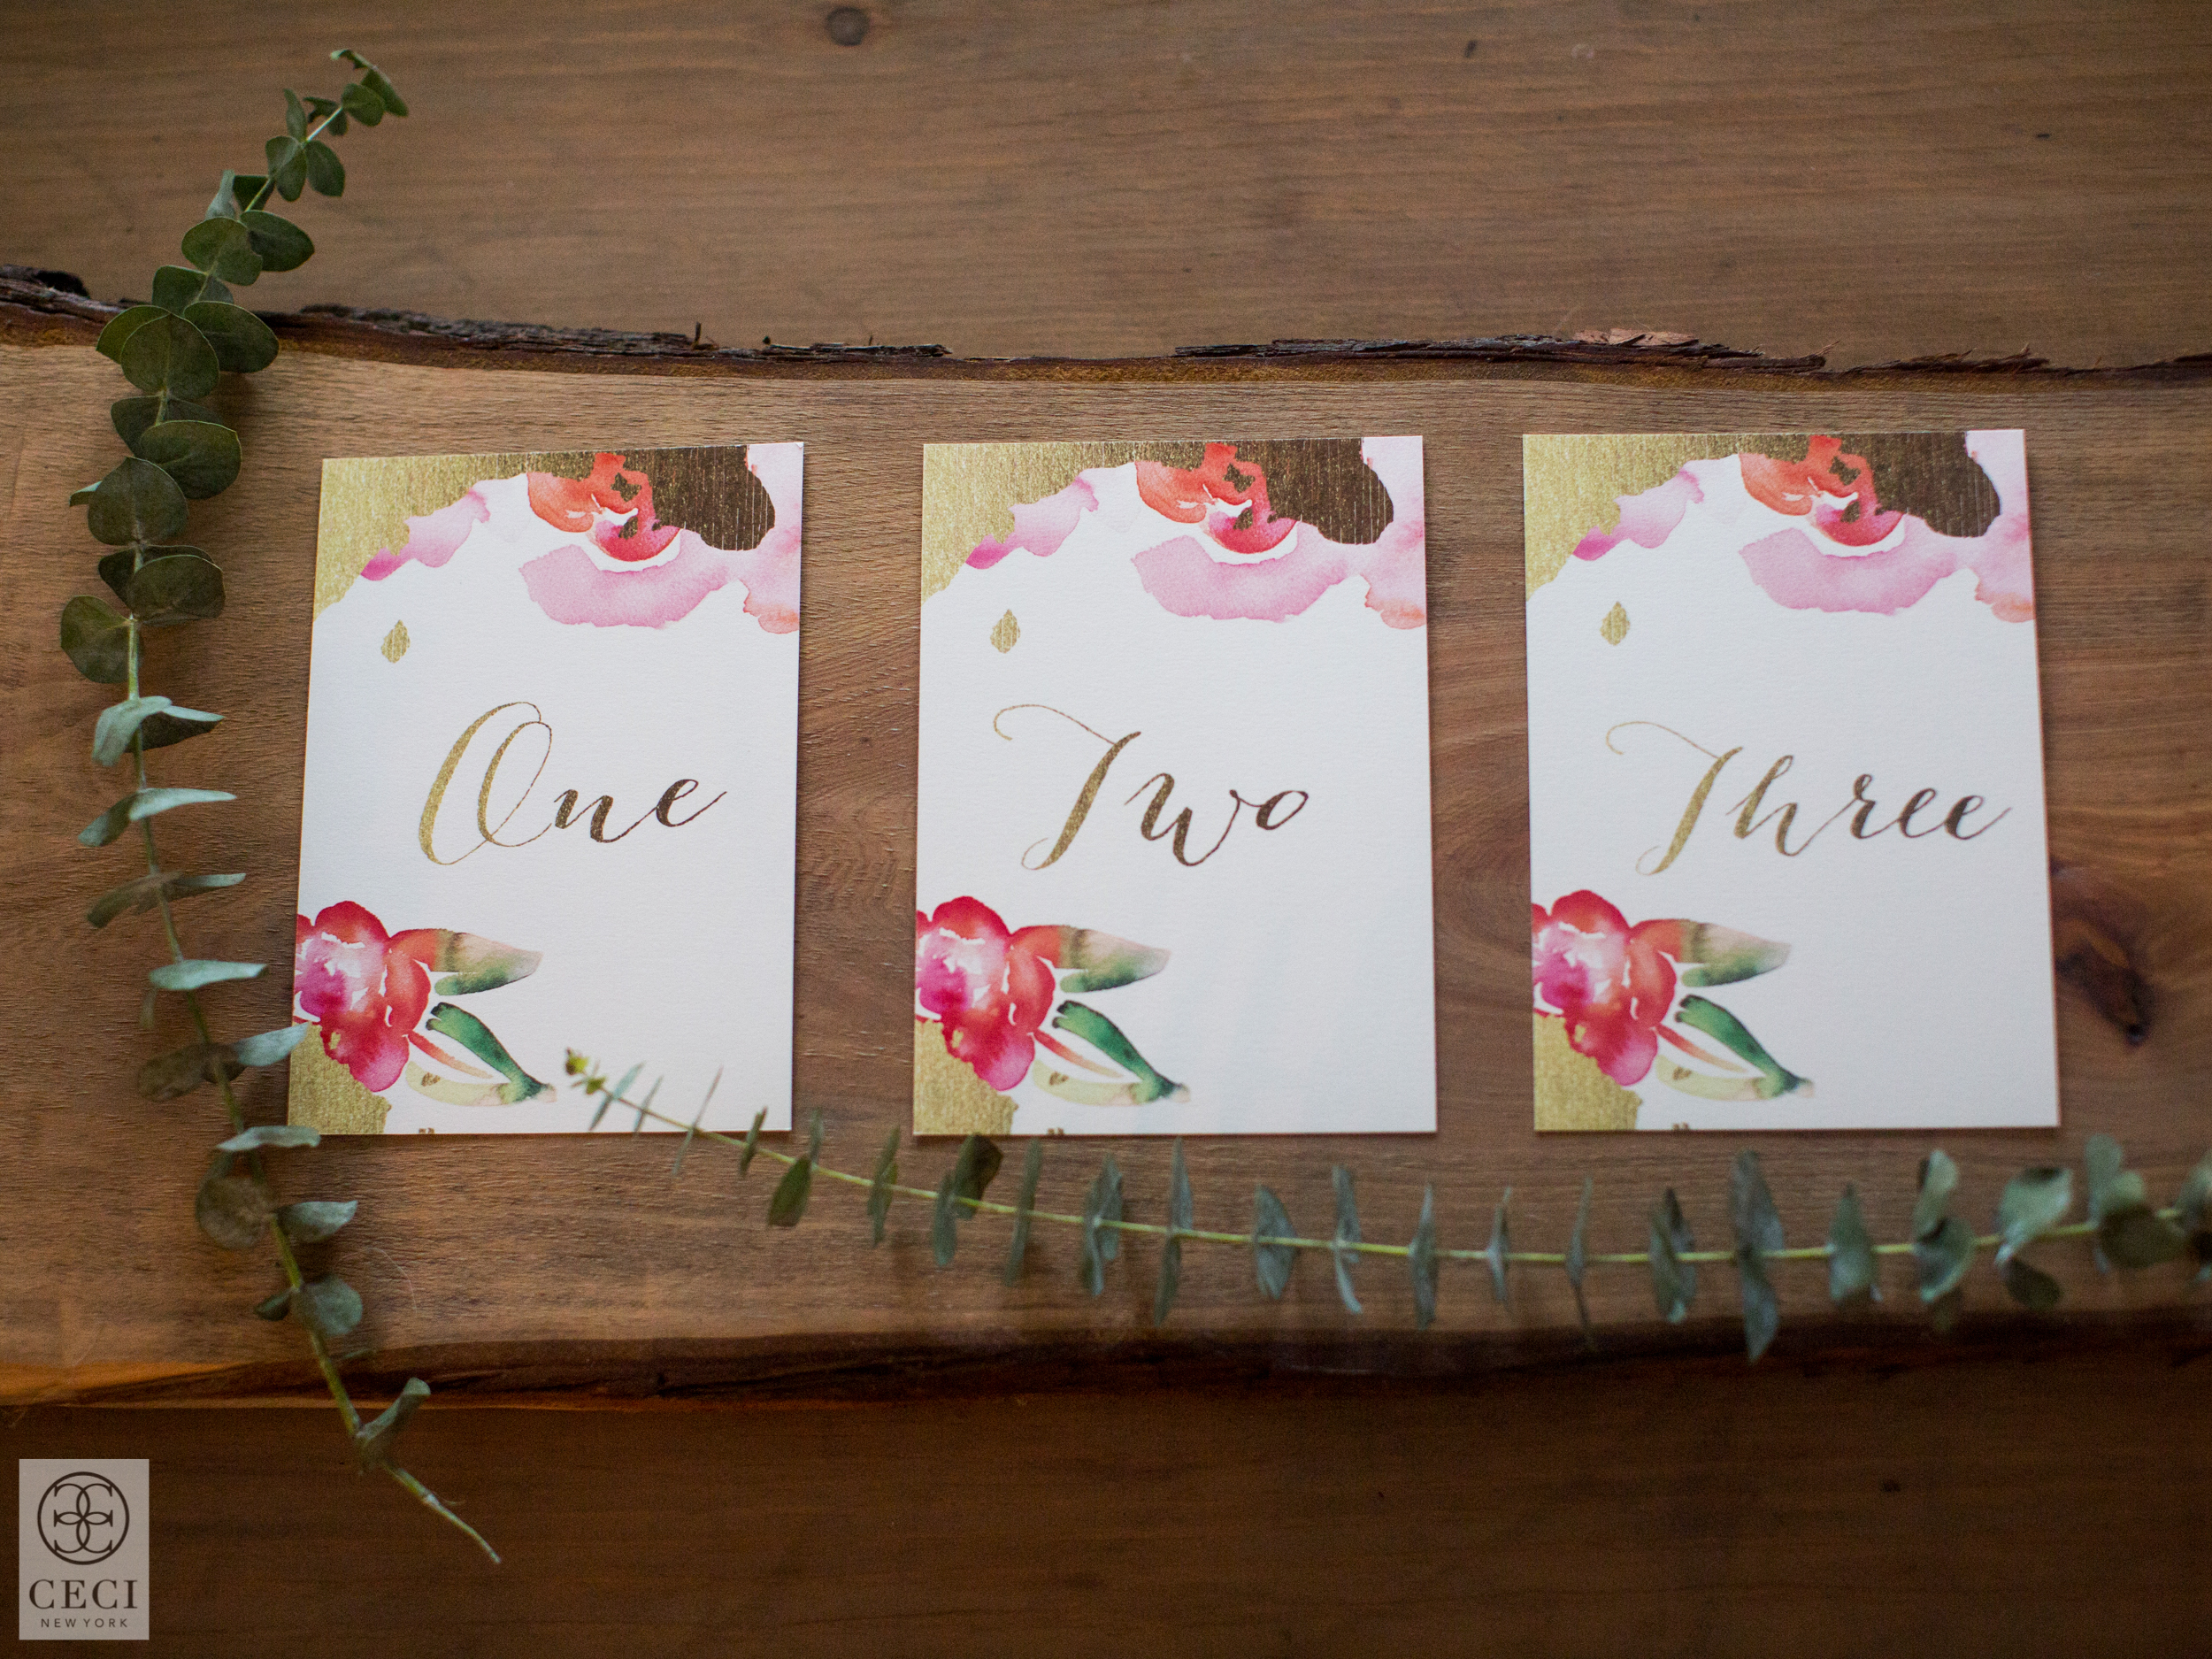 Ceci_New_York_Ceci_Style_Ceci_Johnson_Luxury_Lifestyle_Wedding_Floral_Sara_Kauss_Lucky_Sun_Ranch_Watercolor_Hand_Painted_Inspiration_Design_Custom_Couture_Personalized_Invitations_-10.jpg